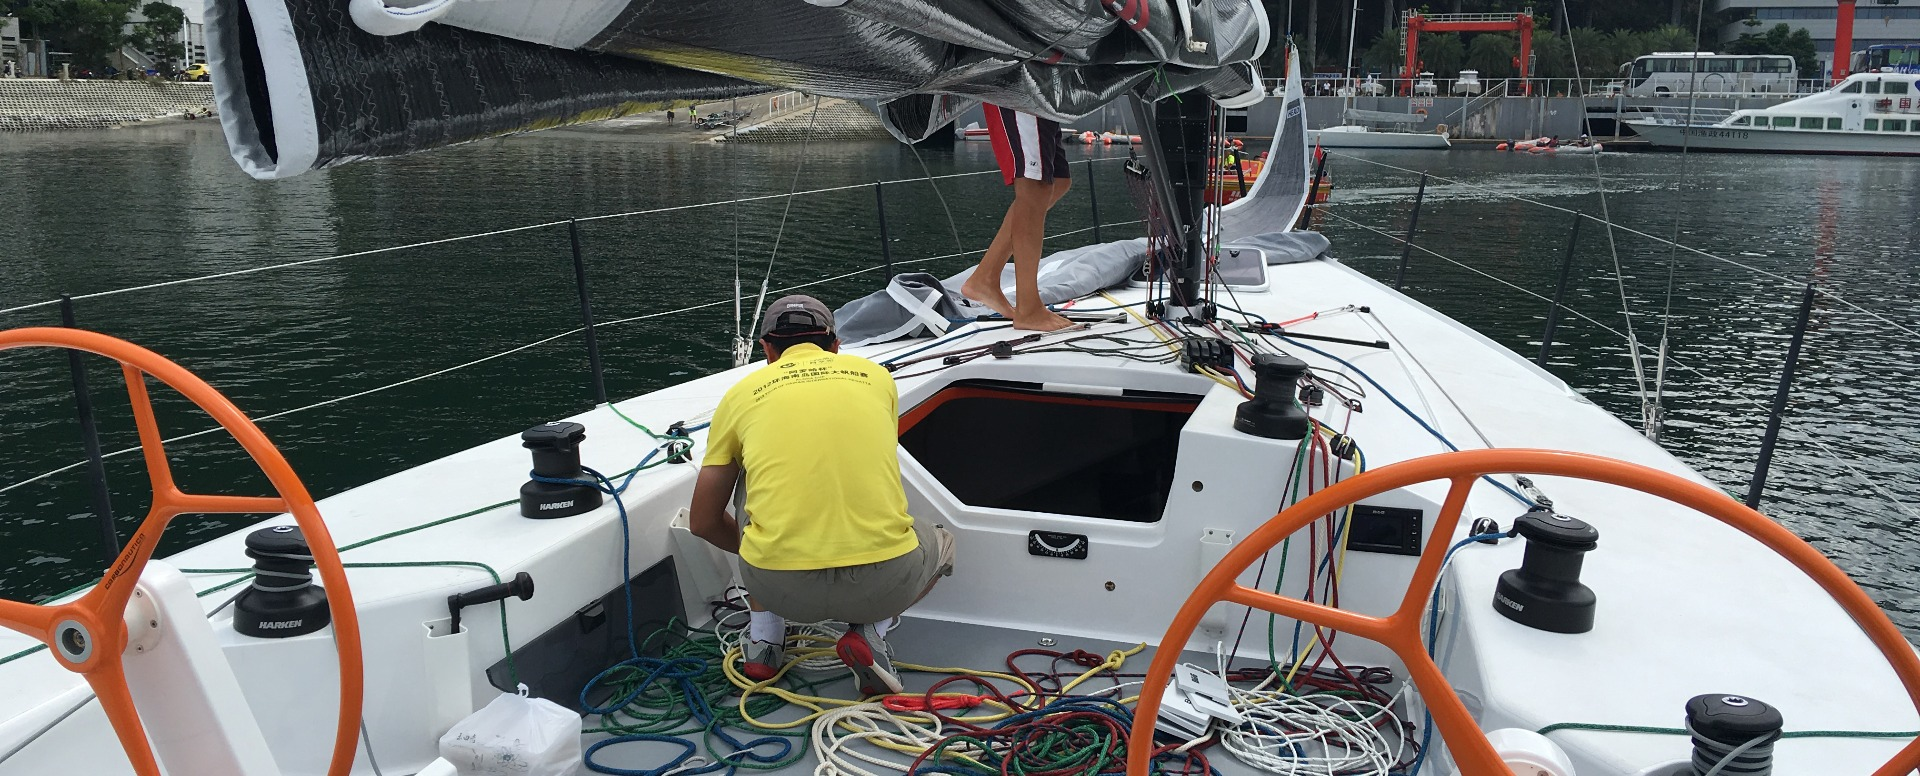 Rope advice for regatta and yachtracing